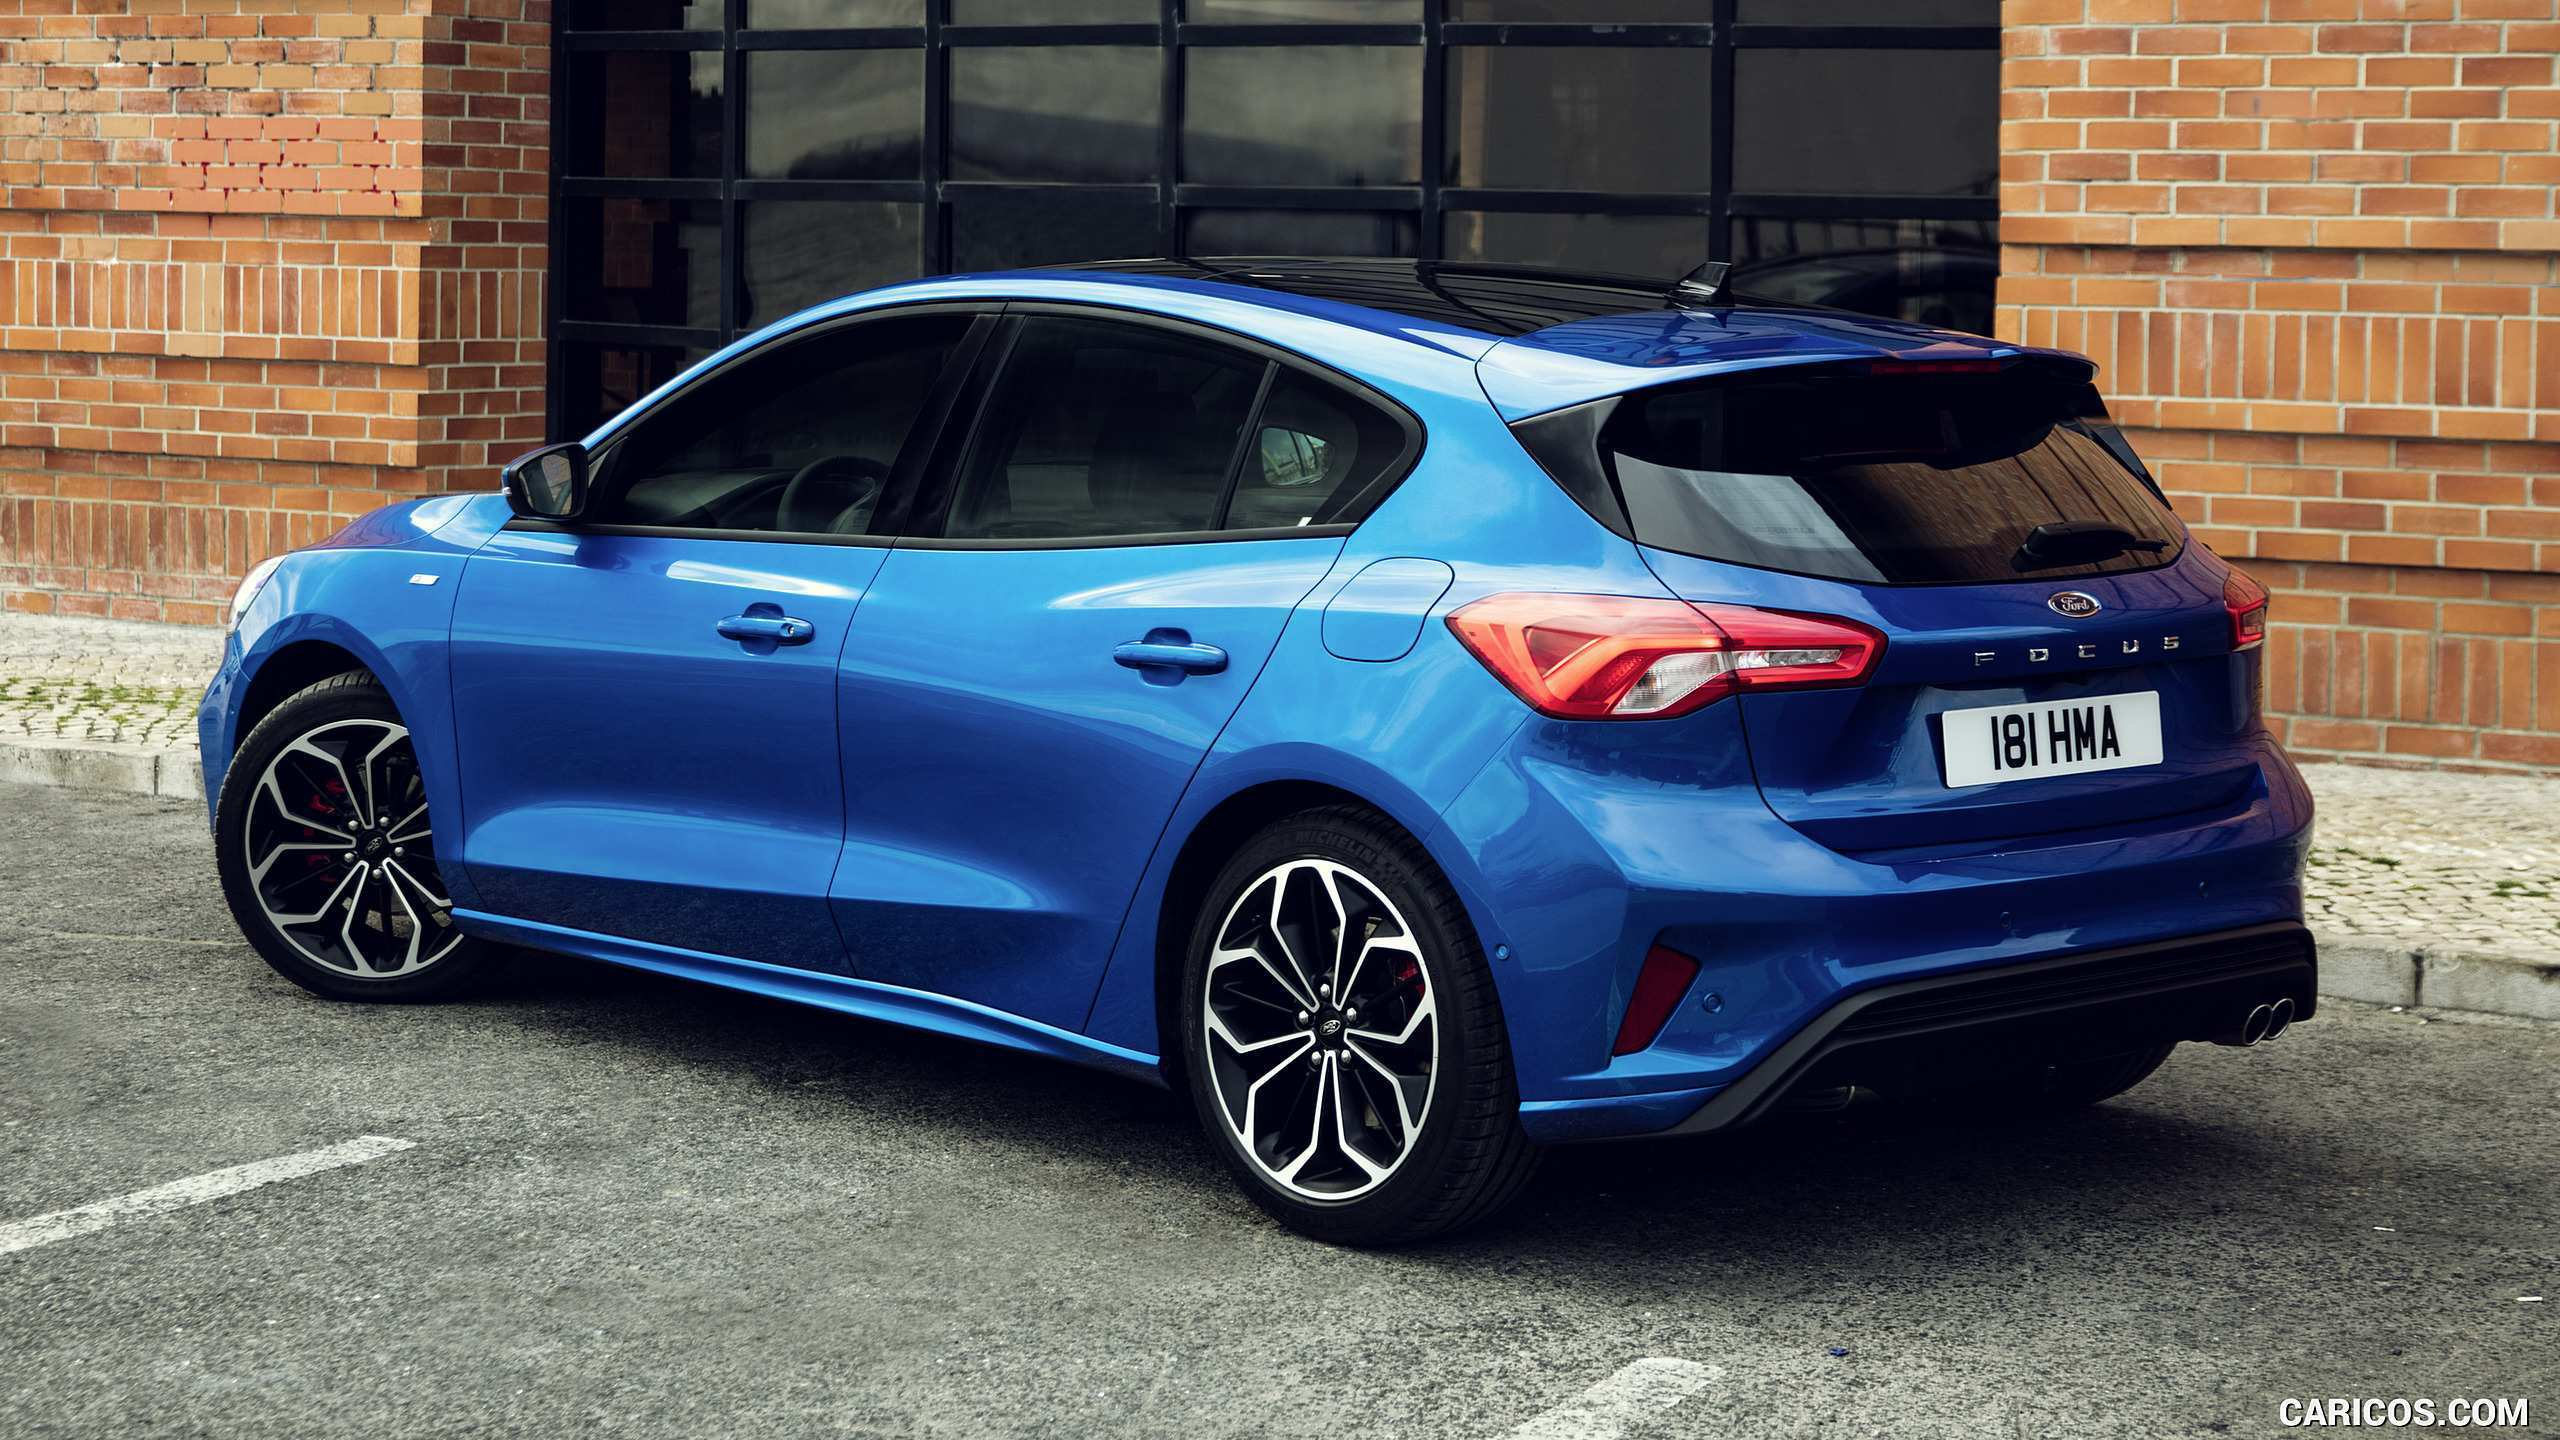 16 Great 2019 Ford Focus St Line Price with 2019 Ford Focus St Line